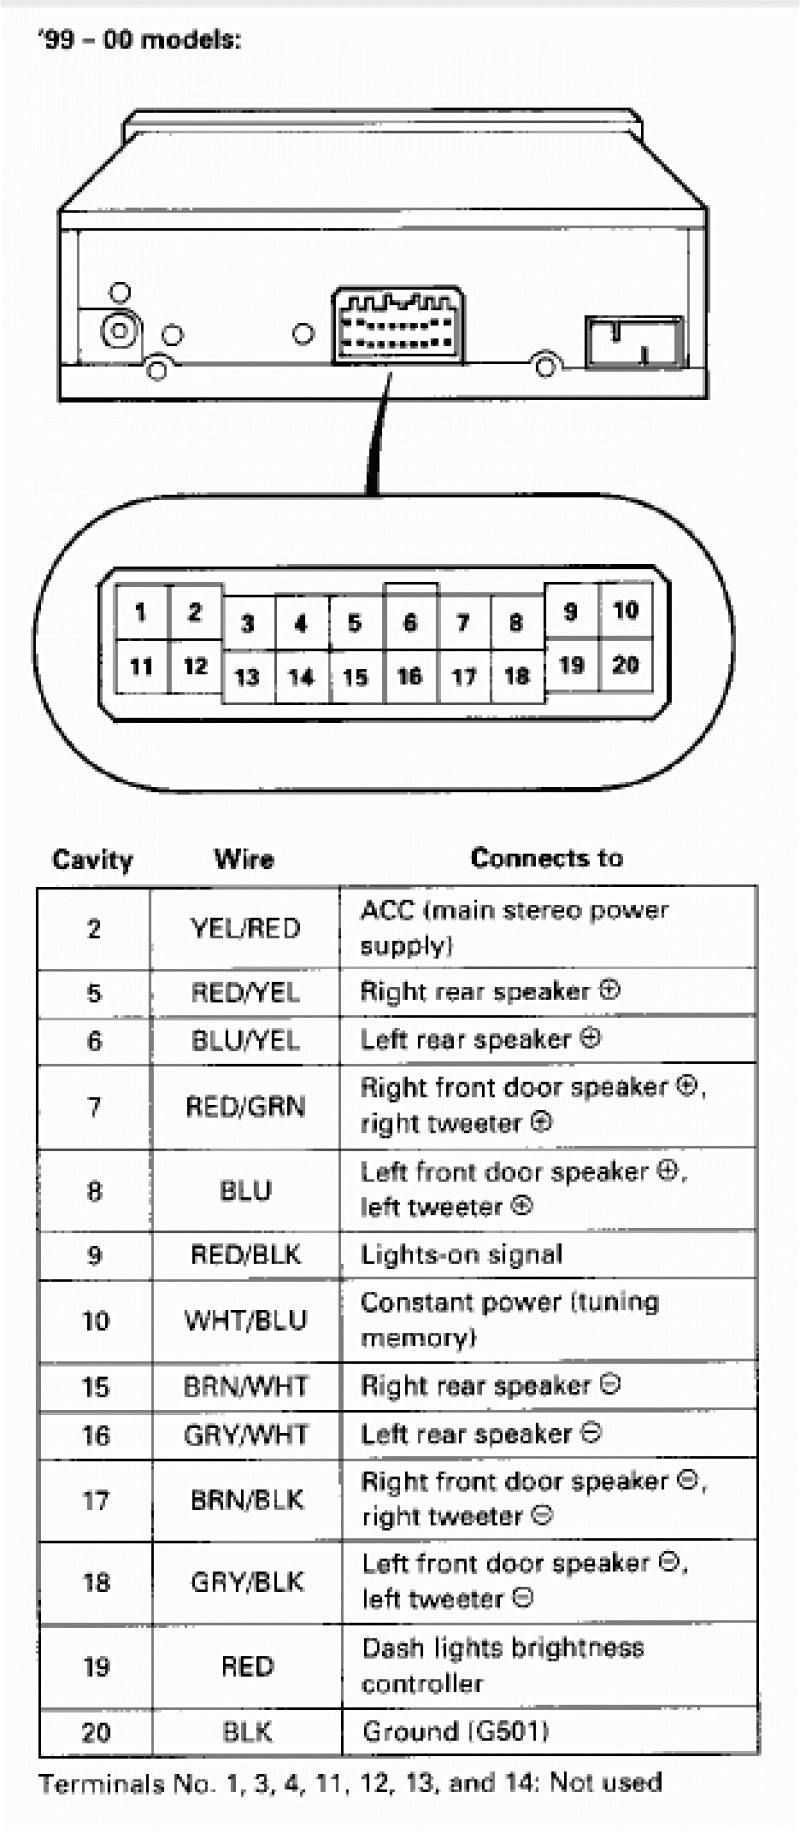 Wiring Diagram For 1999 Honda Civic : Pin by k brown on honda civic radio pinterest